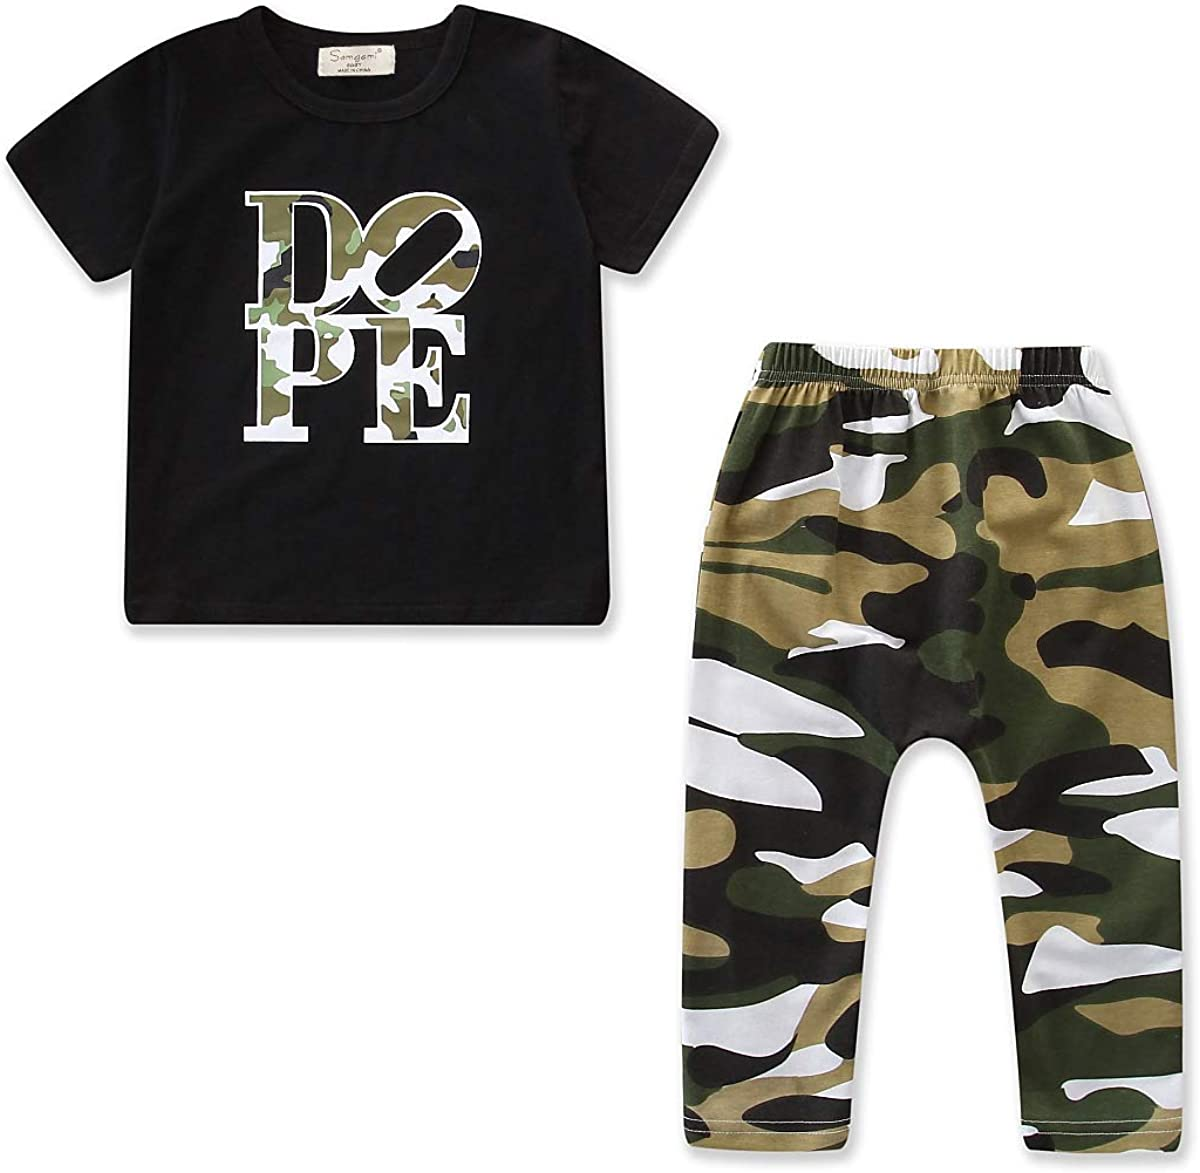 Toddler Boys Summer Clothes Camouflage Short Sleeve Tops + Pants Baby Boy 2PC Summer Outfit Set